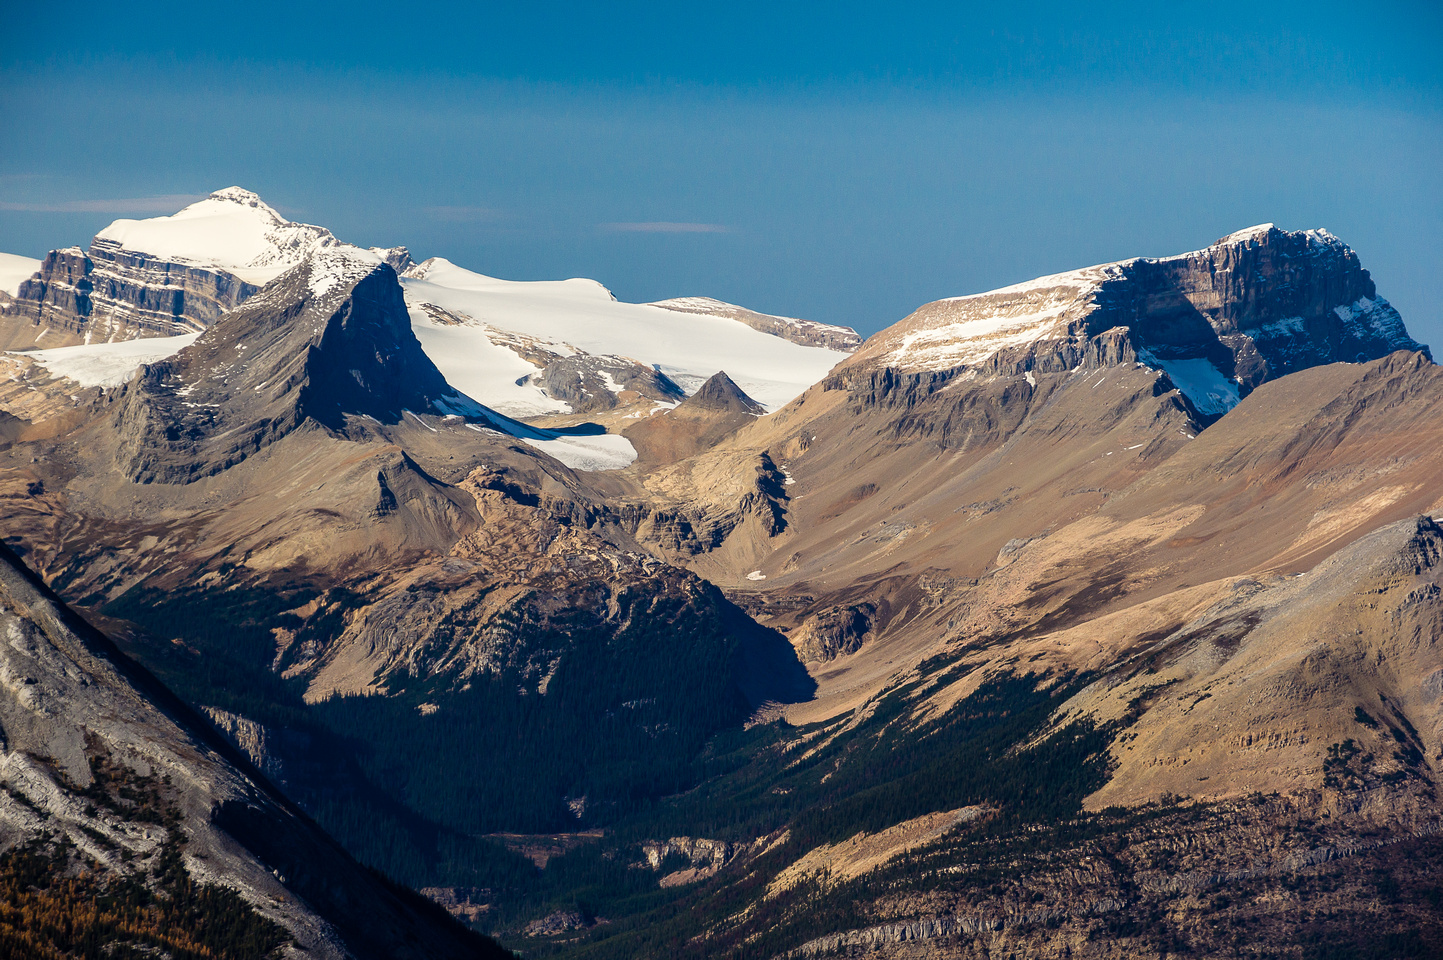 Niles Meadows approach (winter) to the Wapta Icefields with Niles at left and Daly at right. Balfour at distant left.